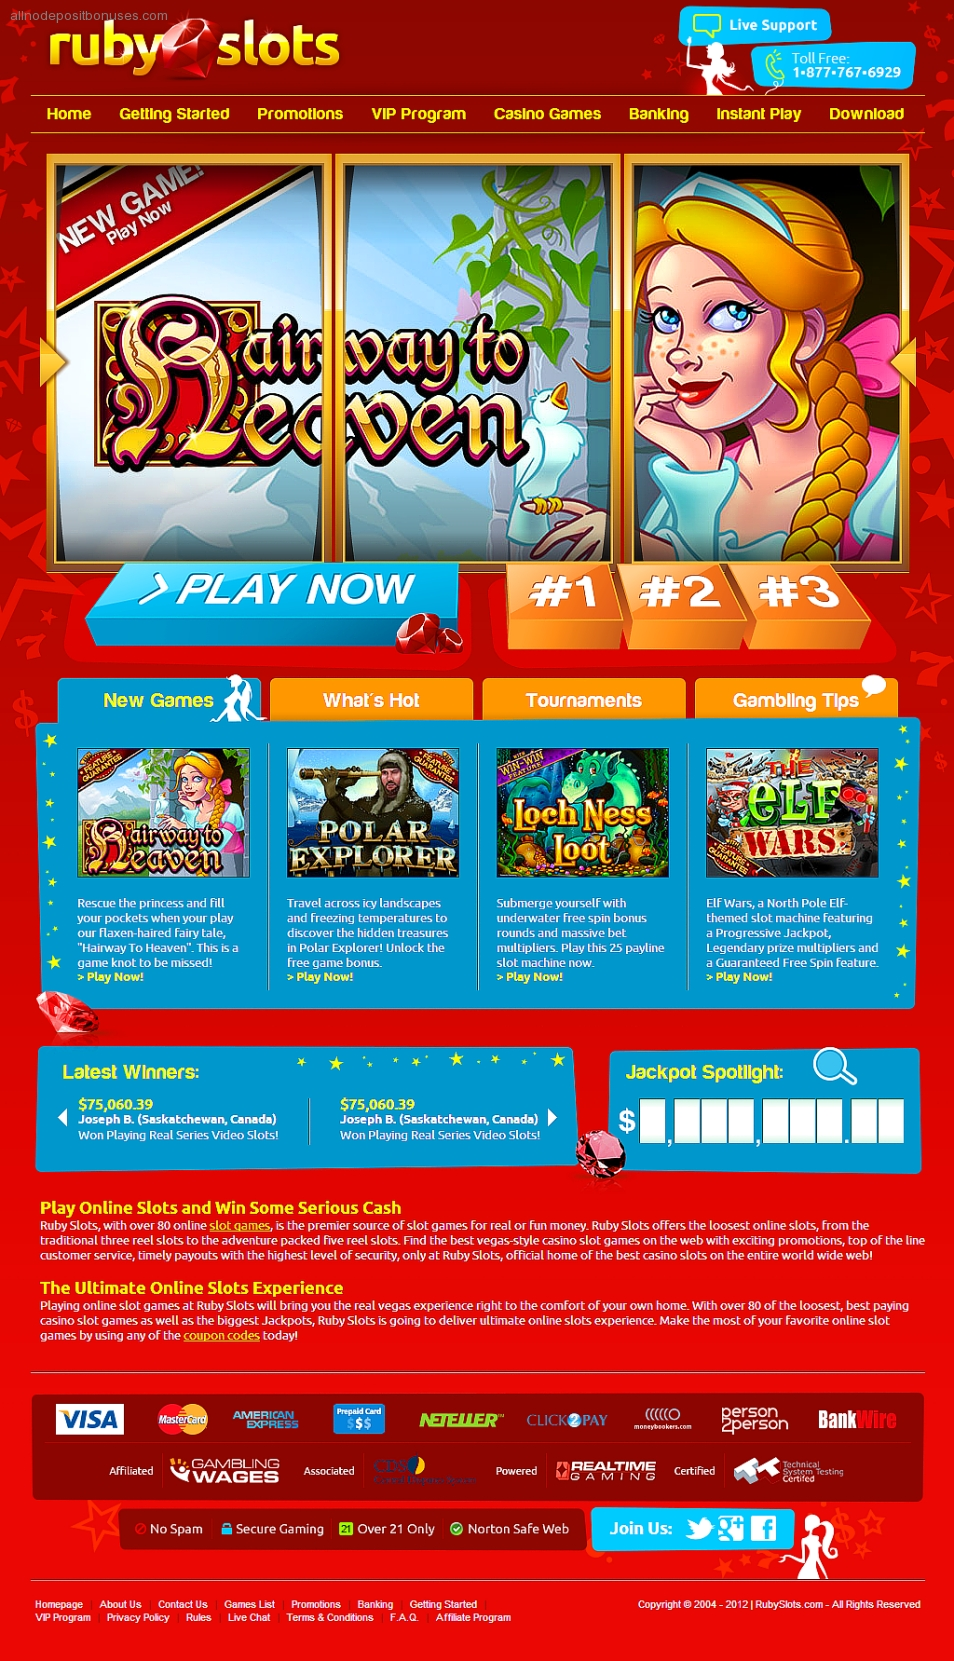 online casino deutschland legal ra sonnengott